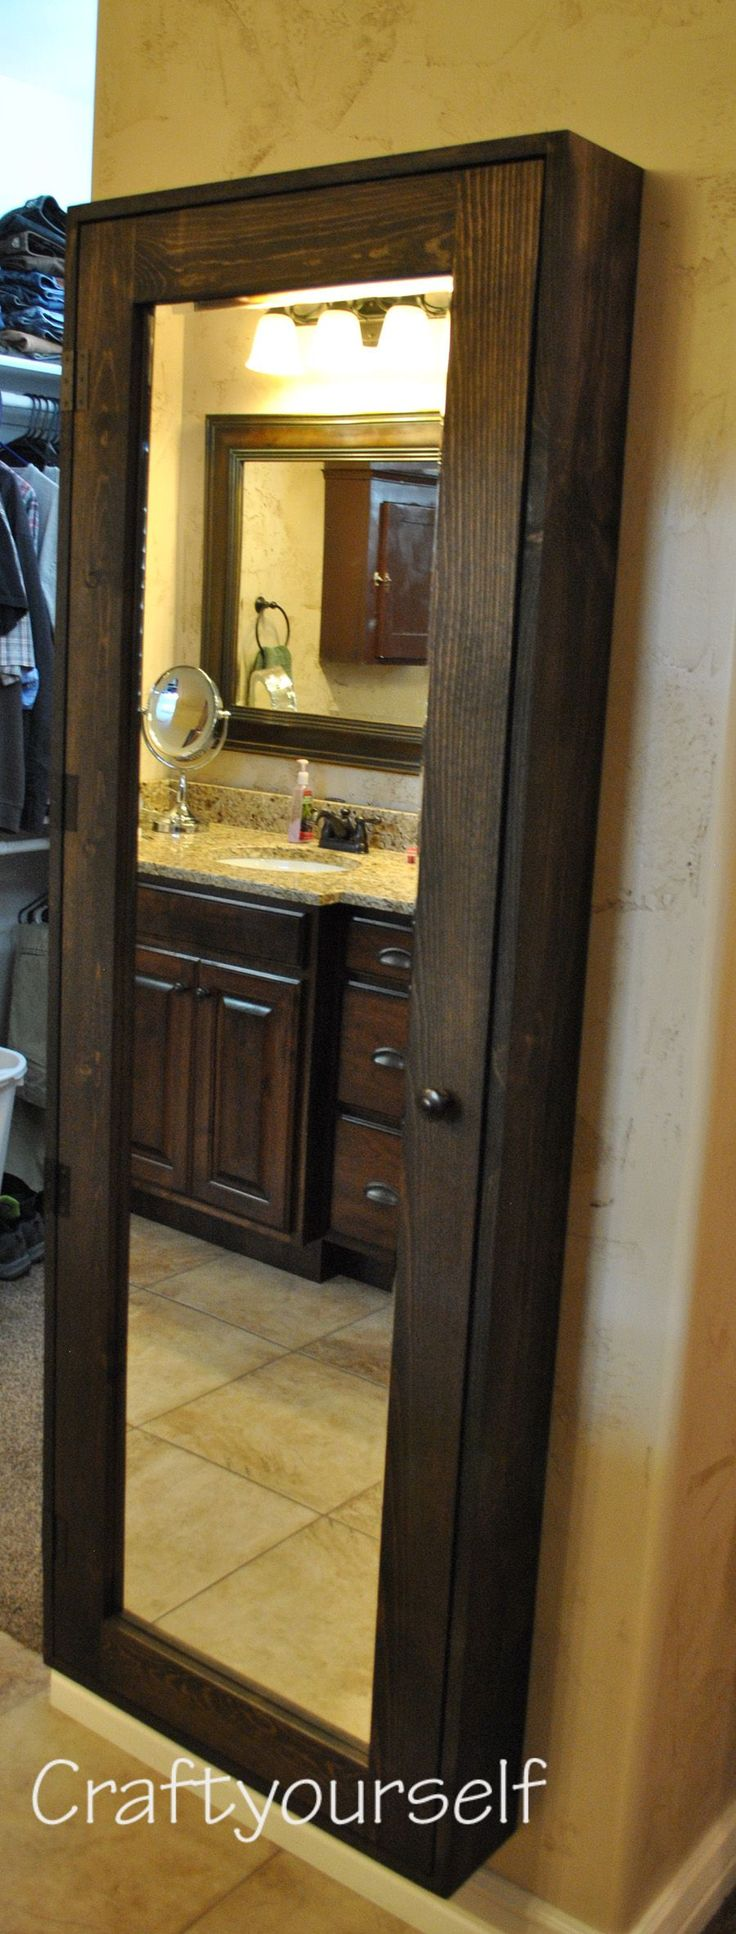 DIY Bathroom Cabinet with Mirror - craftyourself.com